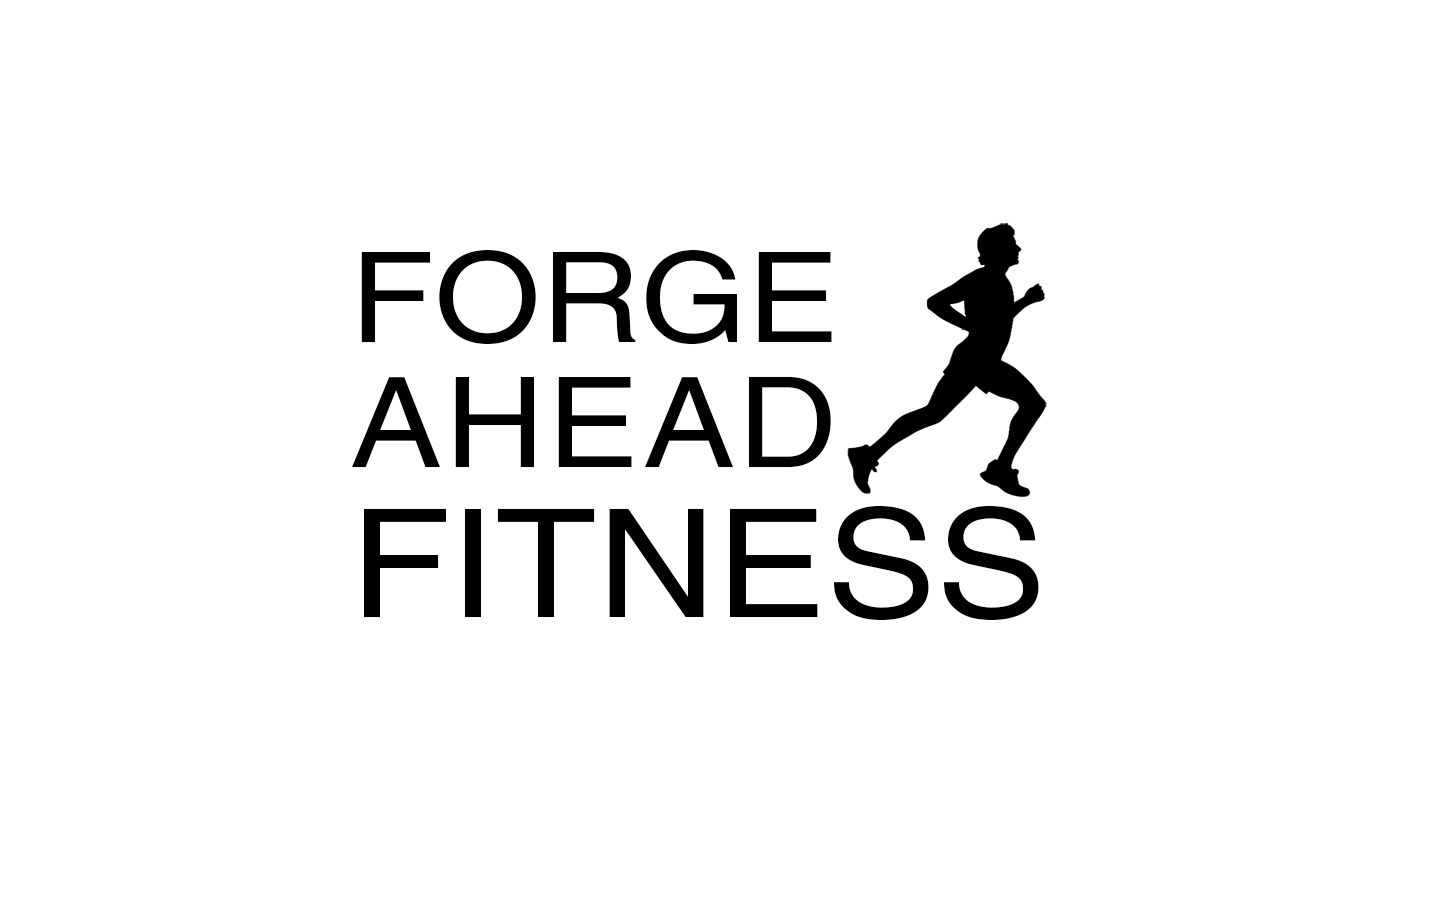 32 Professional Training Logo Designs for Forge Ahead